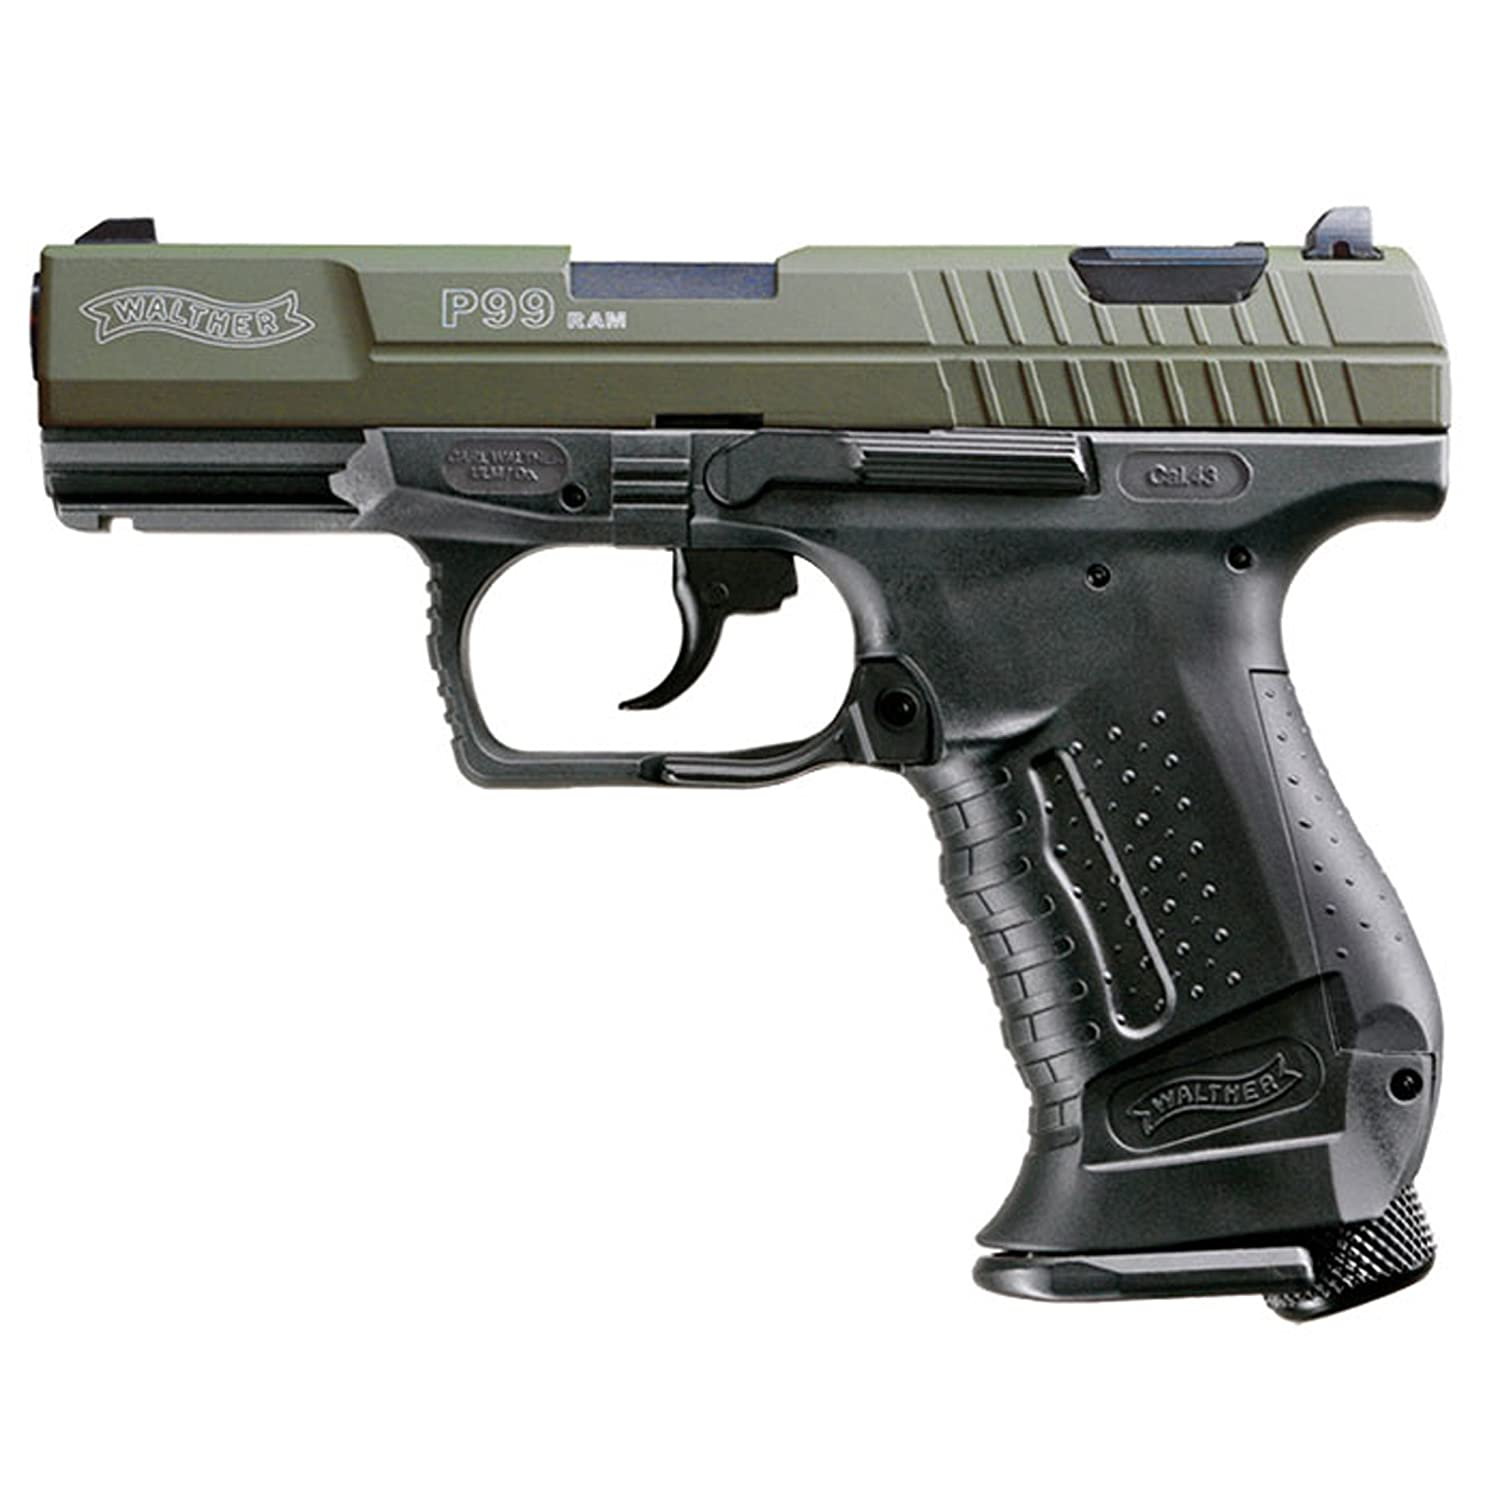 Umarex Walther P99 Review